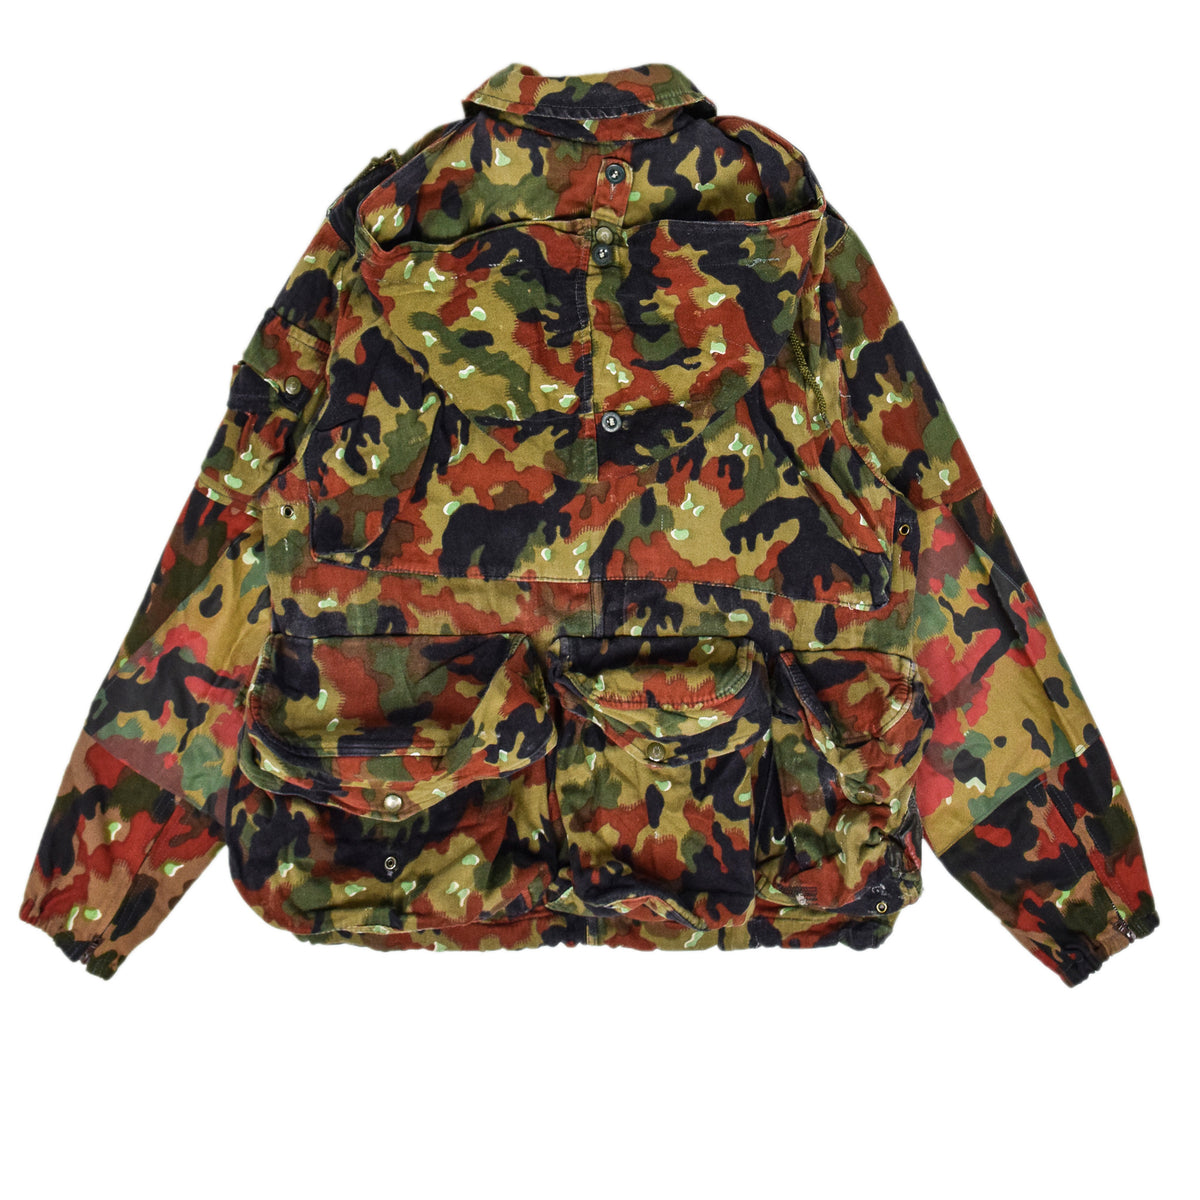 Vintage 70s Swiss Army Alpenflage Camo Sniper Combat Field Jacket M / L back